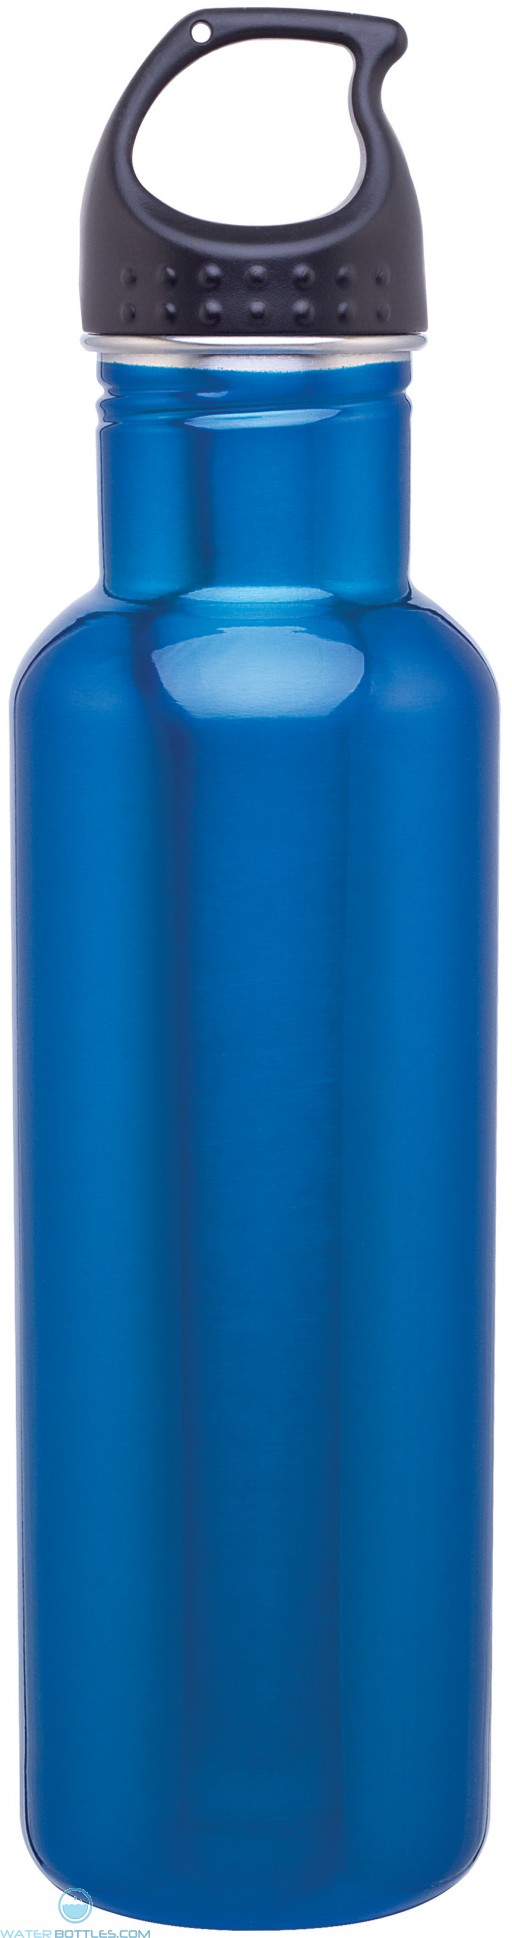 H2Go Stainless Steel Bolt | 24 oz - Electric Blue